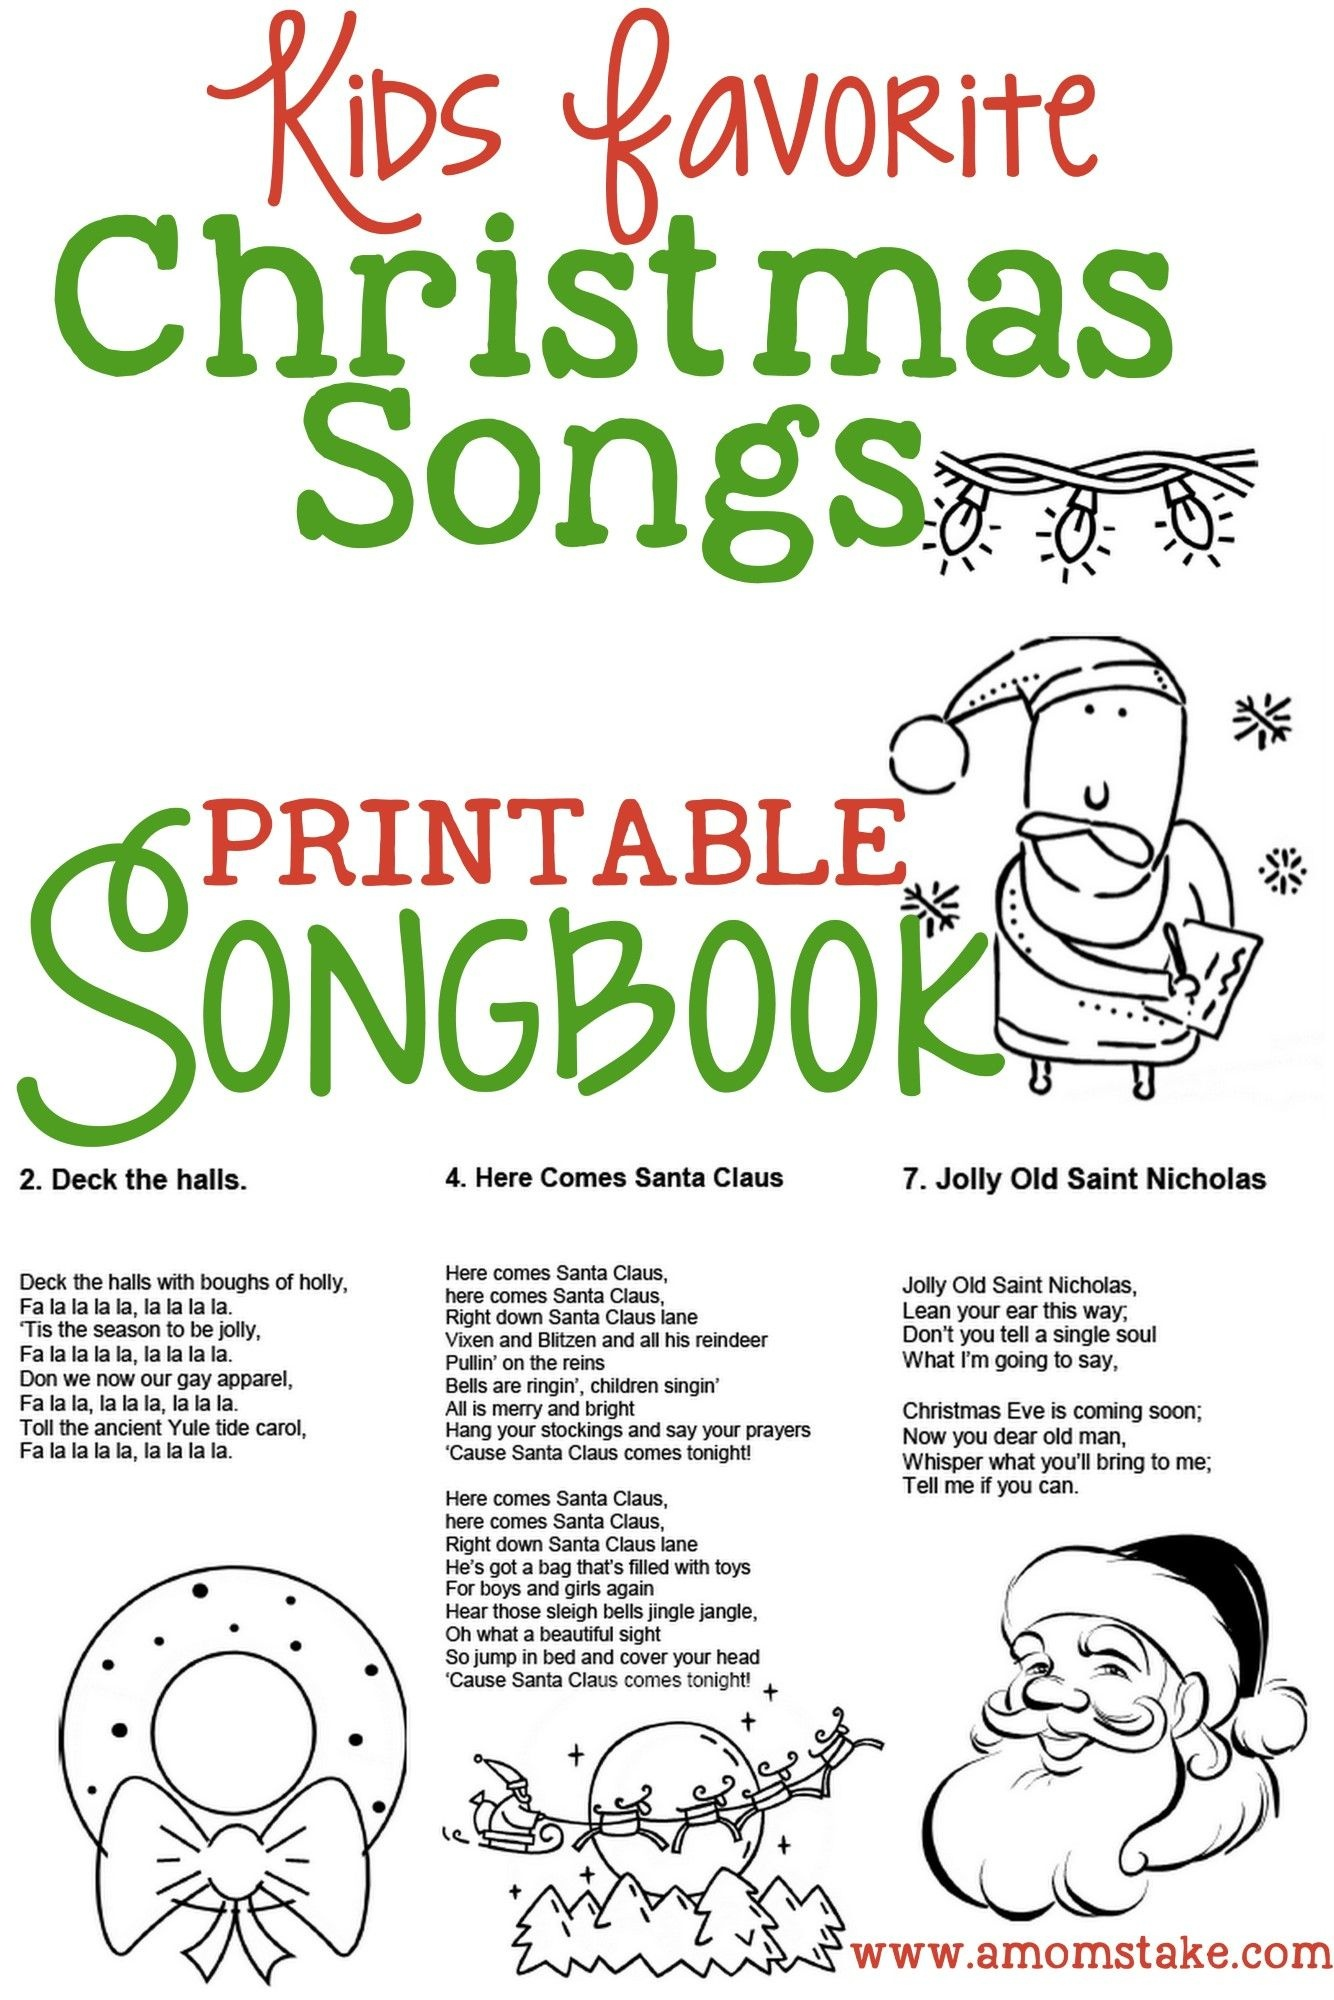 Christmas Songs For Kids – Free Printable Songbook! A Coloring Book - Free Printable Christmas Carols Booklet